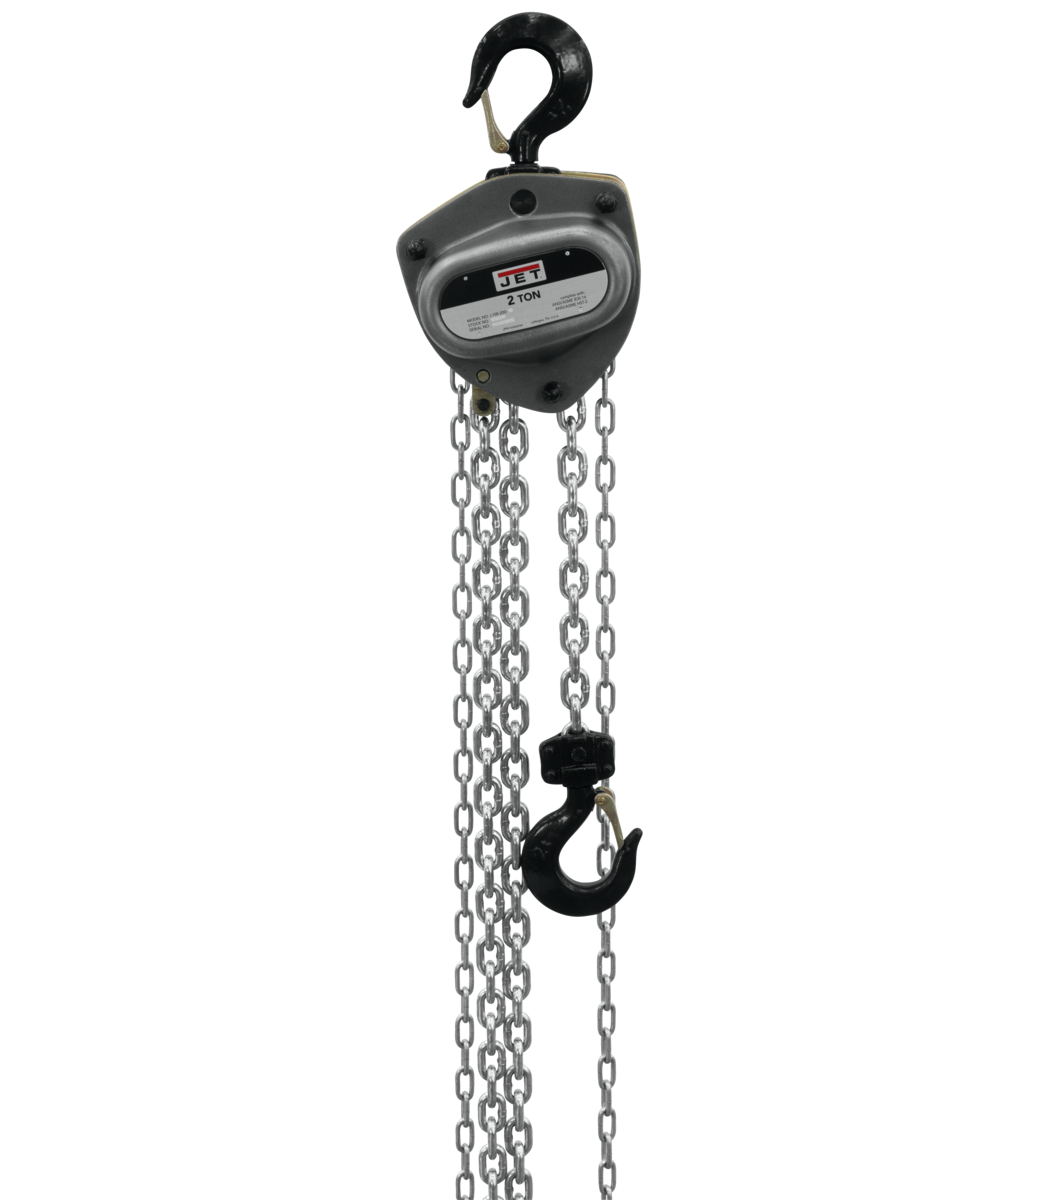 L-100-200WO-30, 2-Ton Hand Chain Hoist With 30' Lift & Overload Protection